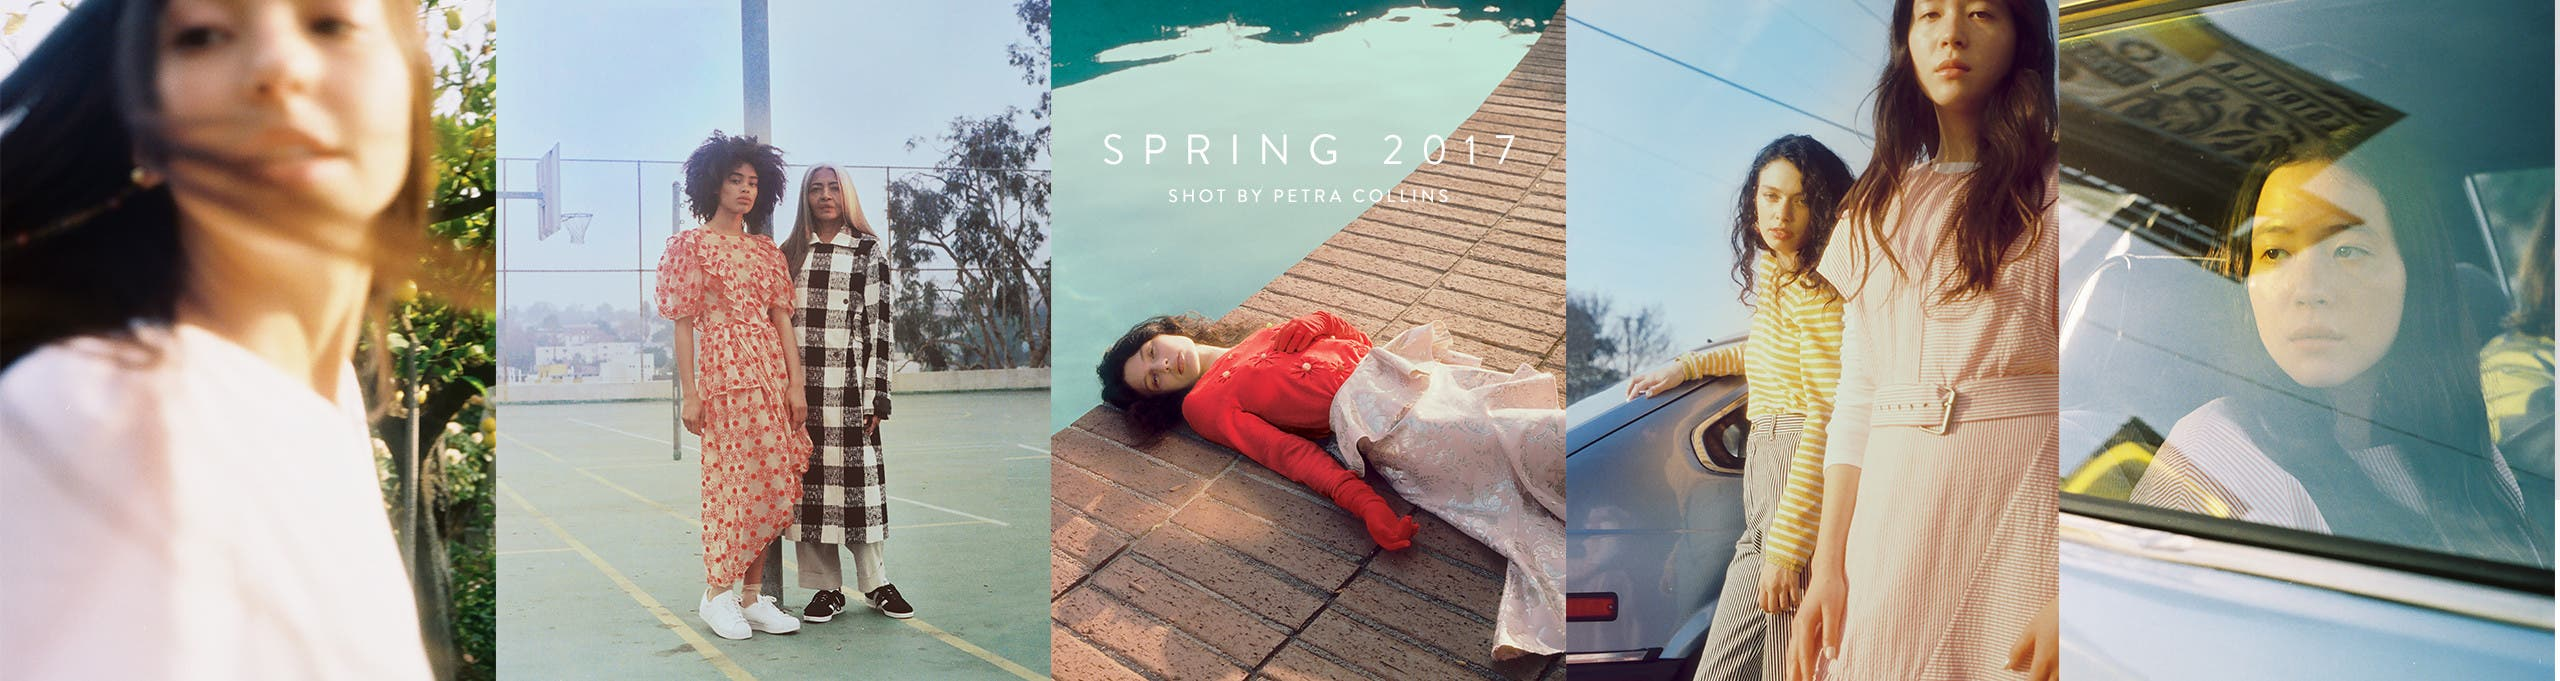 Spring 2017. Shot by Petra Collins.